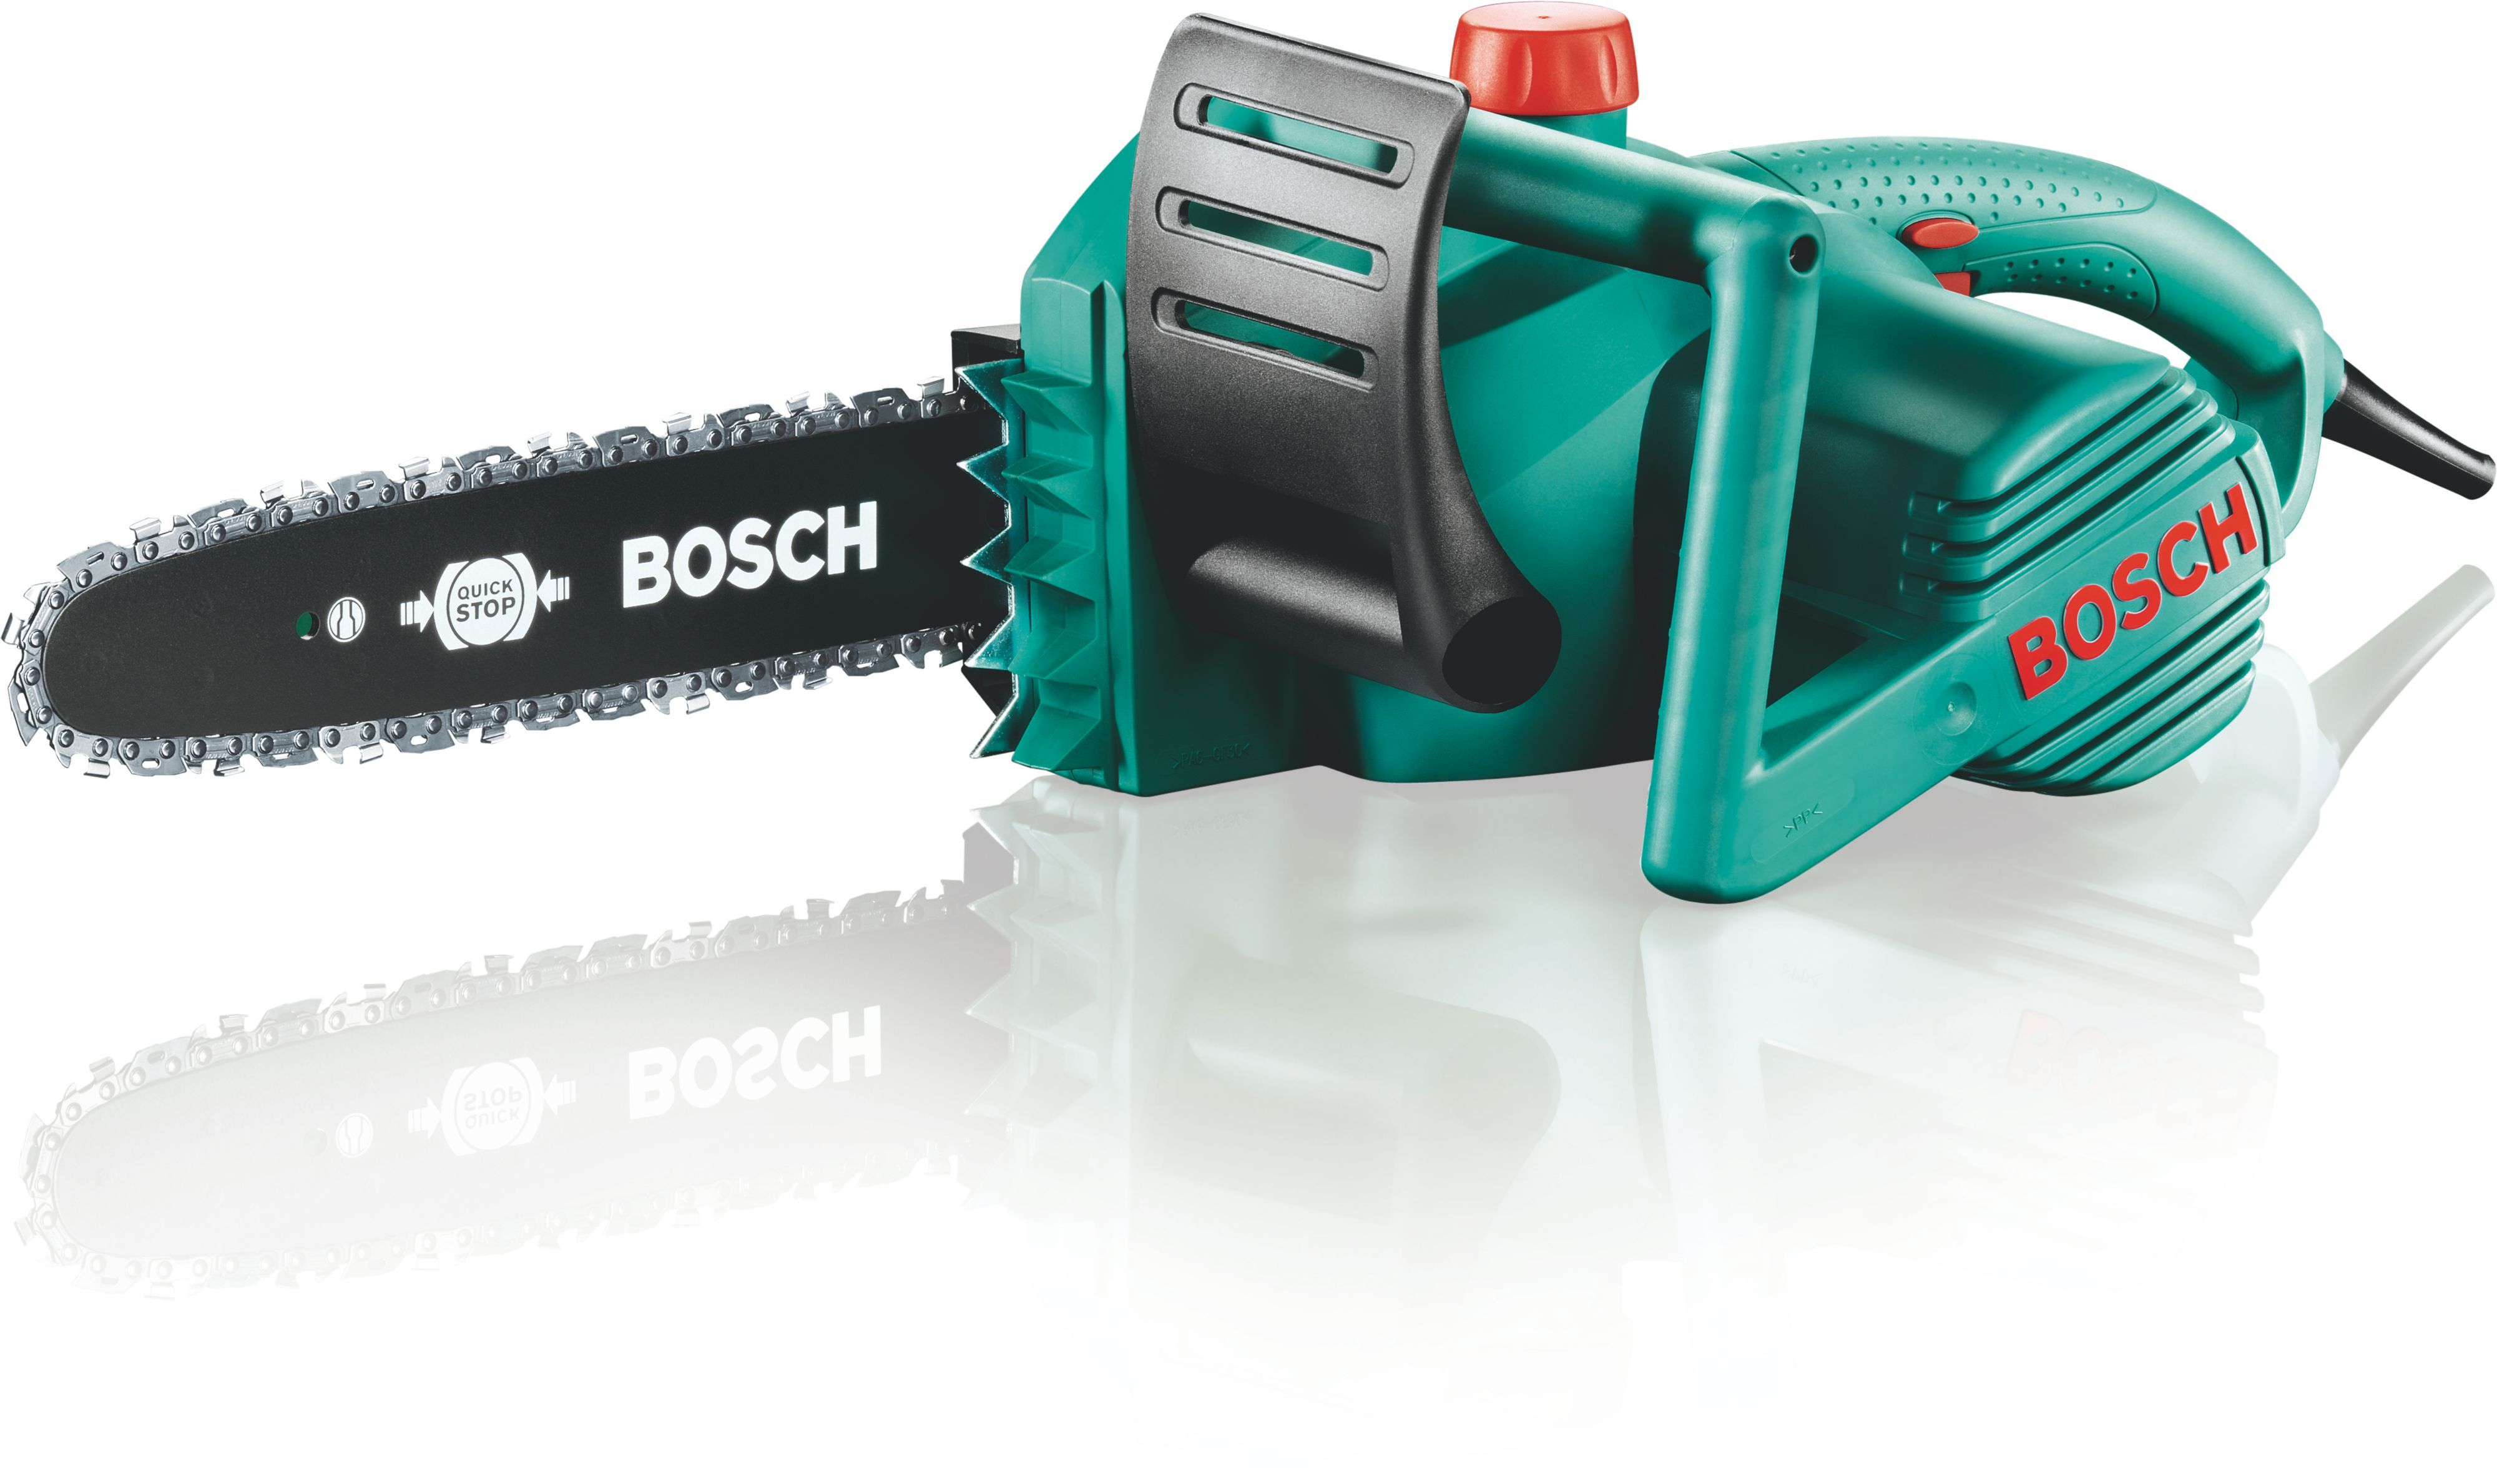 Bosch Ake 30 S Corded Electric Chainsaw